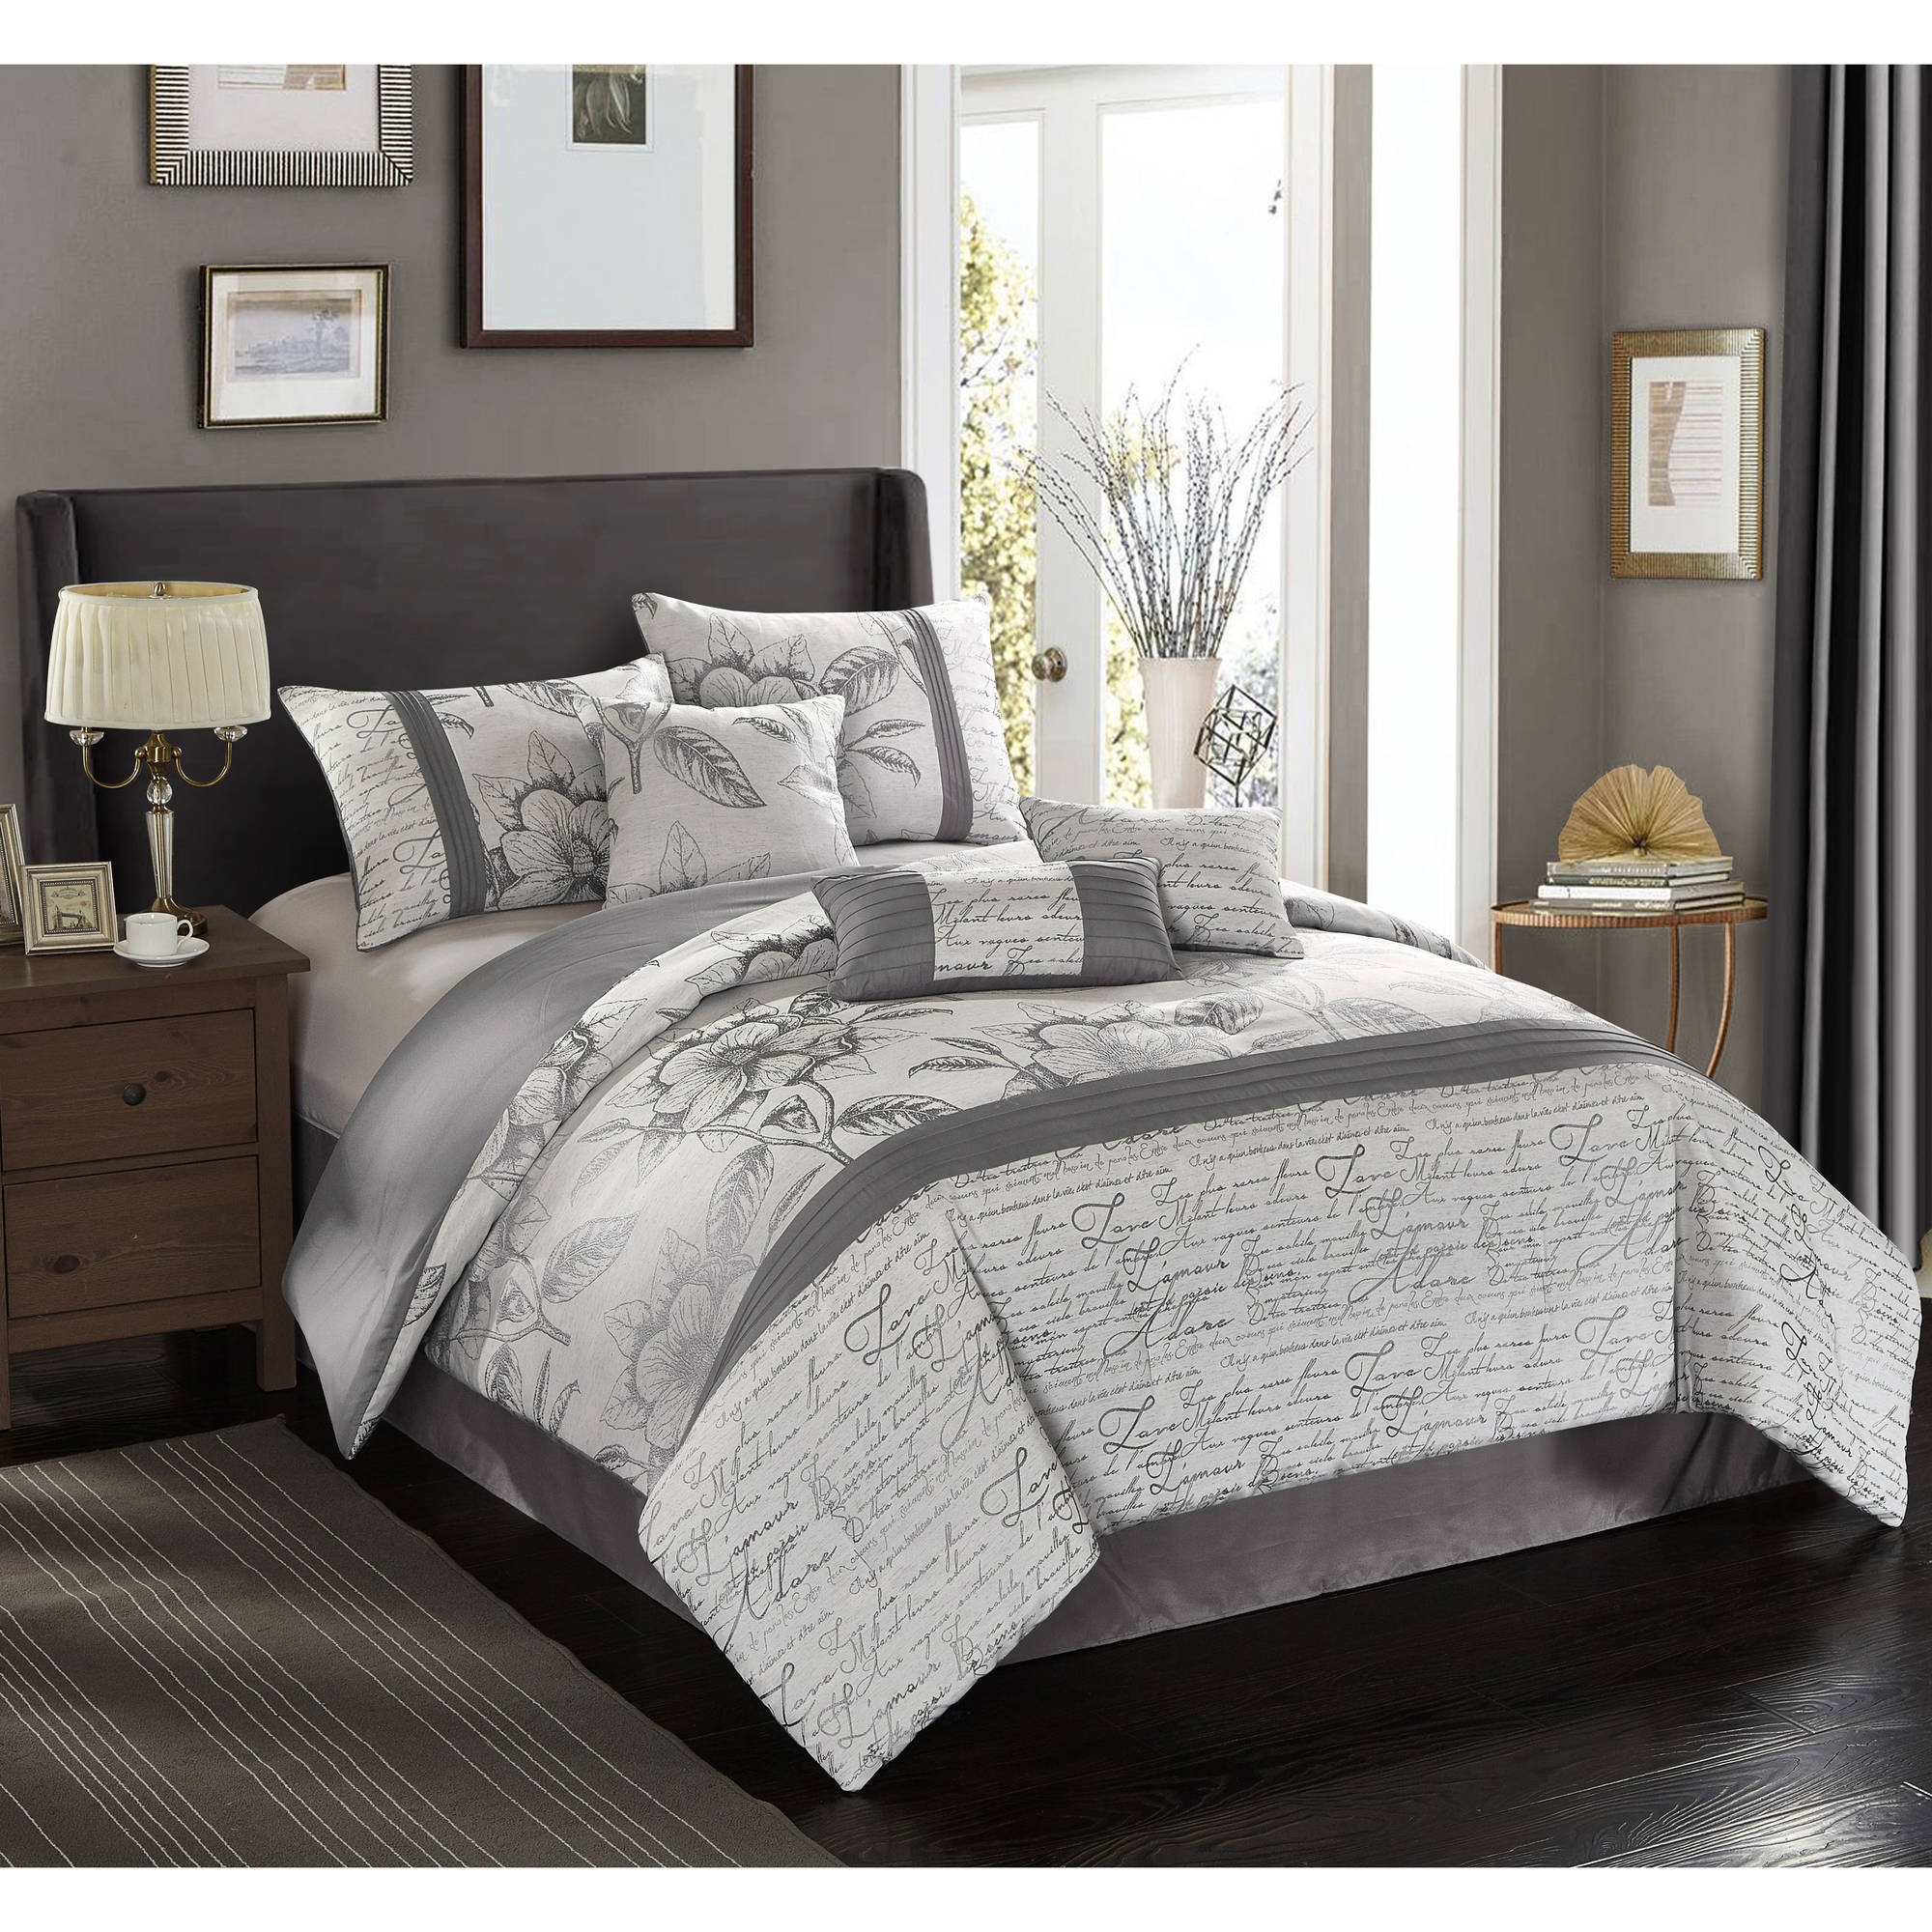 duvet washed color silver grey sheet thinkpawsitive comforter hotel gray cover cotton solid fitted co queen set bedding